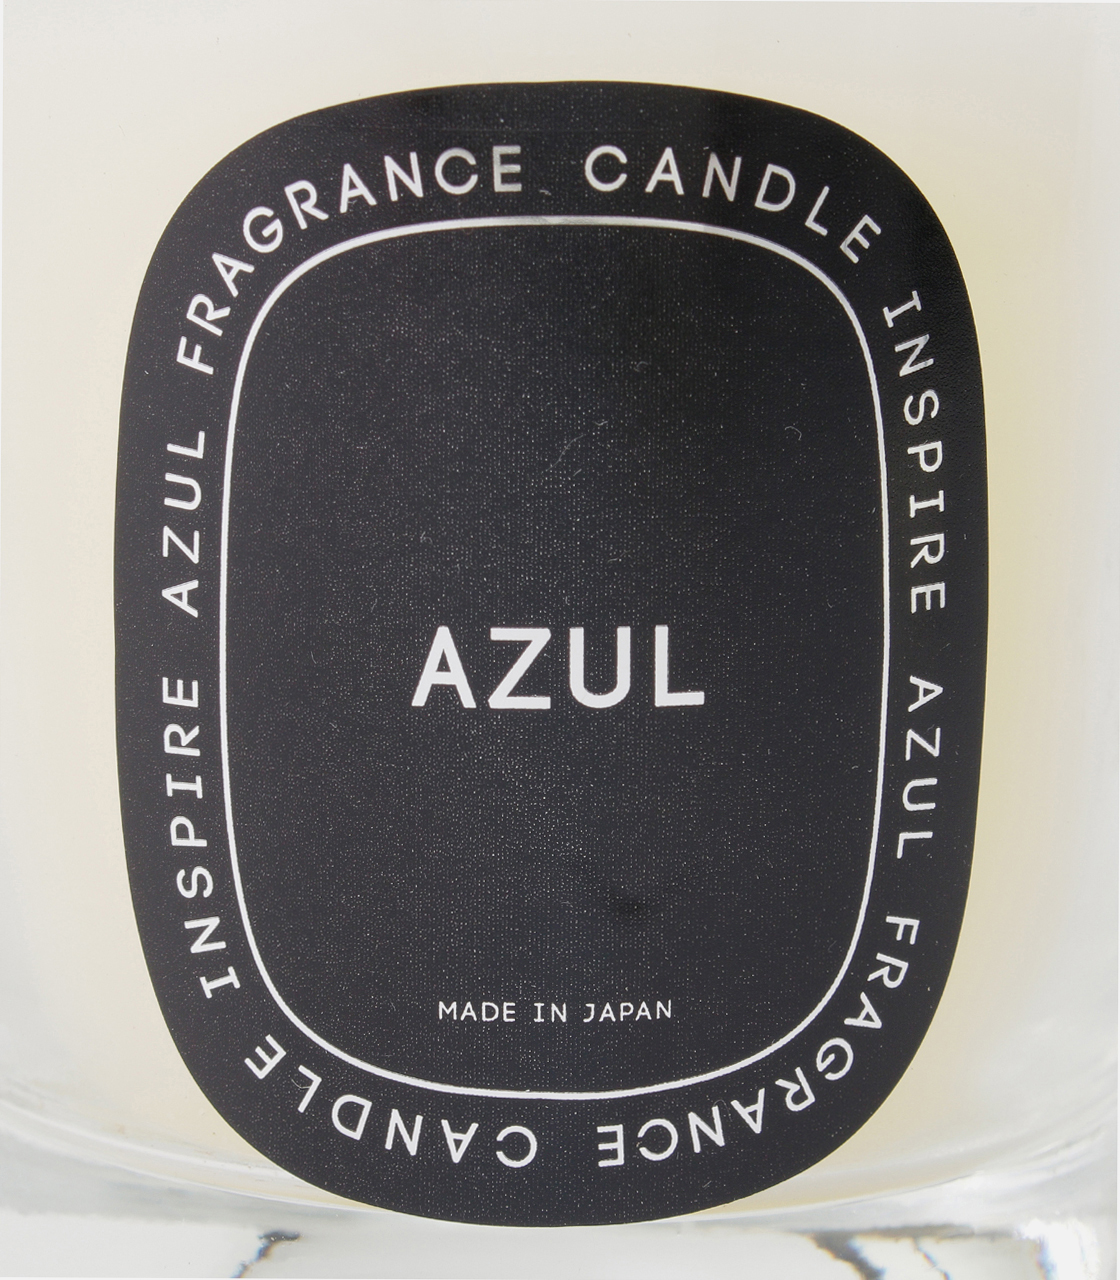 AZUL CANDLE/アズールキャンドル 詳細画像 BLK 5